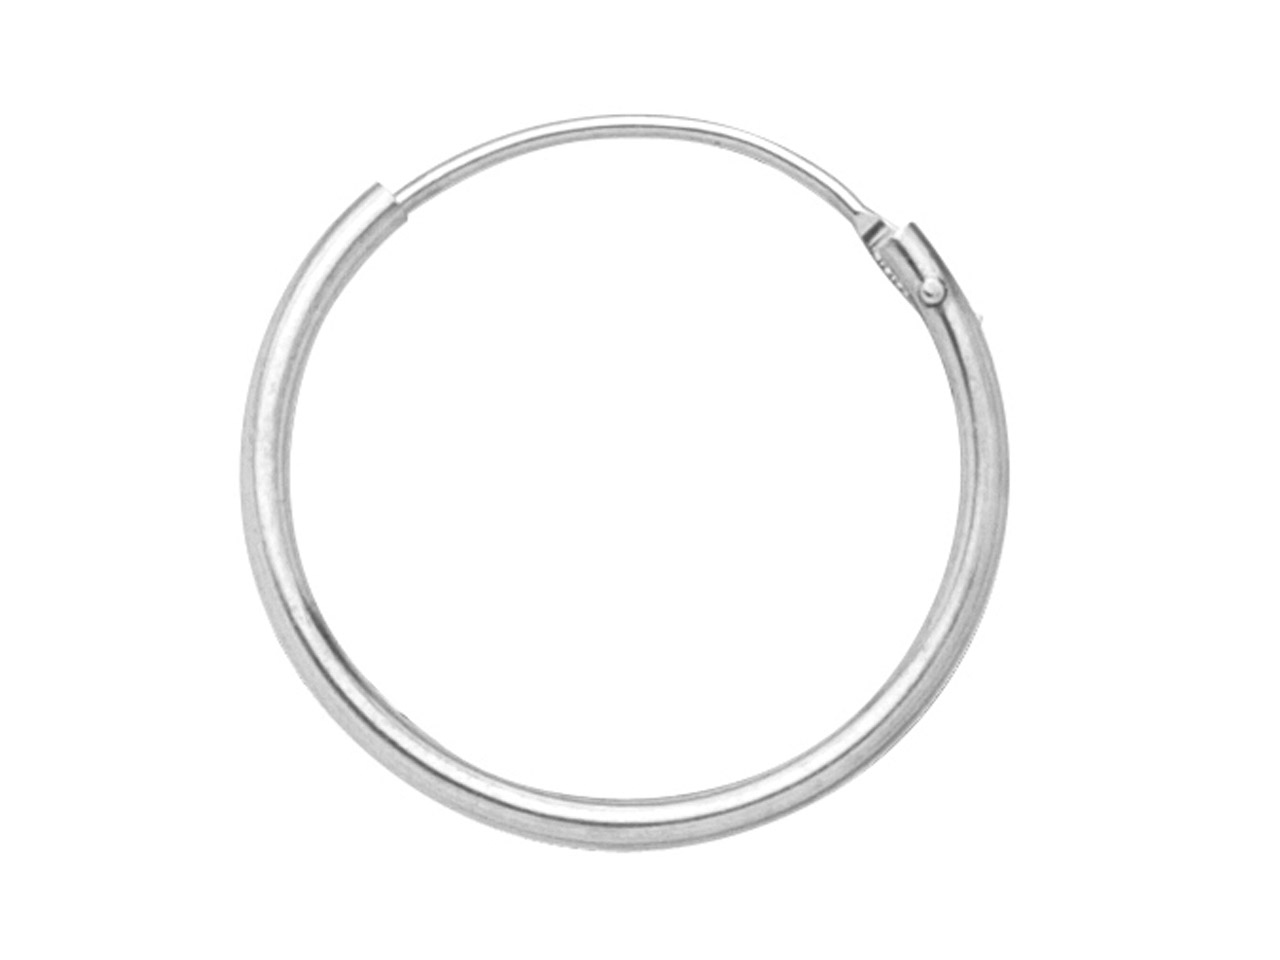 18ct White Gold Creole Hoop        Earrings, 11mm